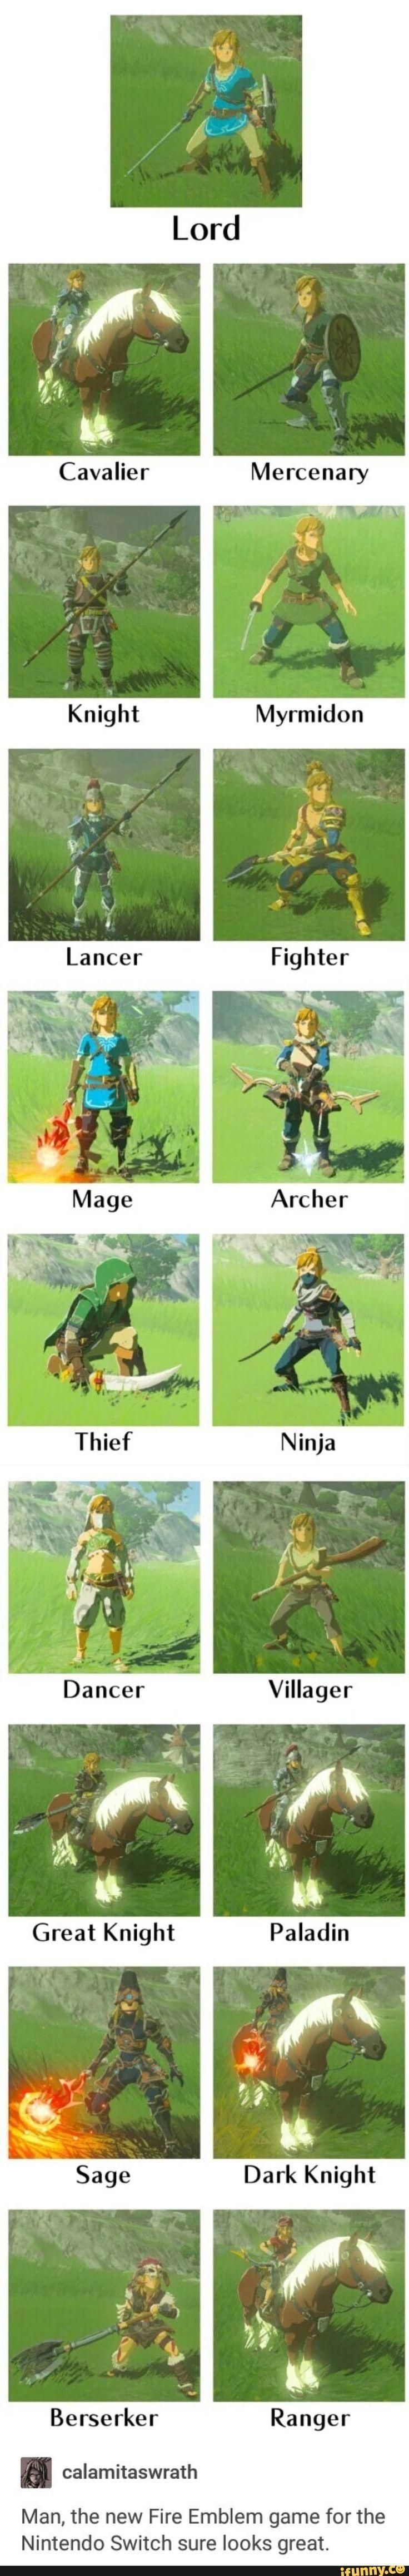 New Fire Emblem game leaked | The Legend of Zelda: Breath of the Wild | Know Your Meme